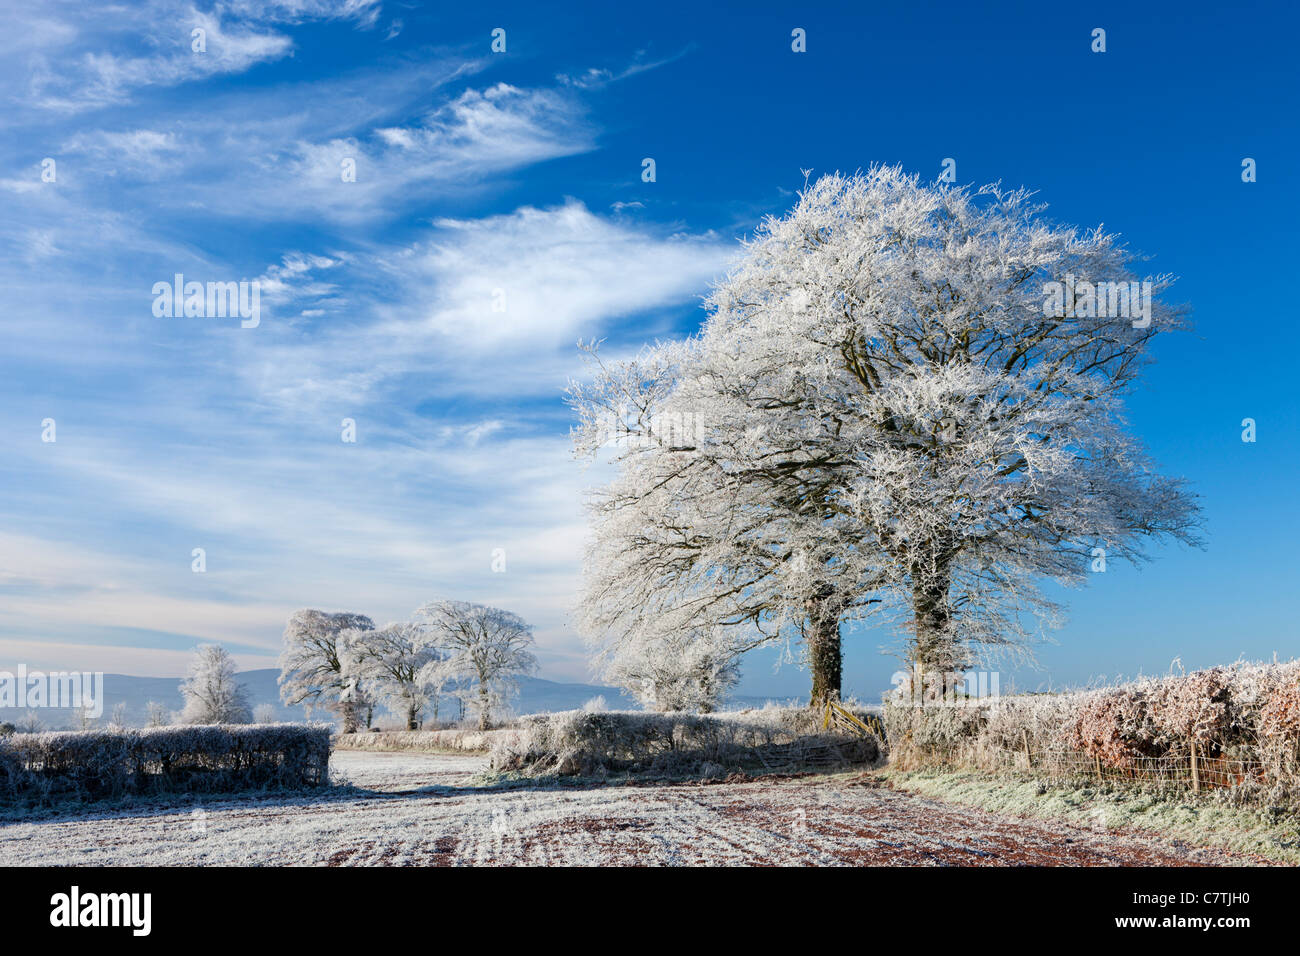 Hoar frosted farmland and trees in winter time, Bow, Mid Devon, England. Winter (December) 2010. - Stock Image